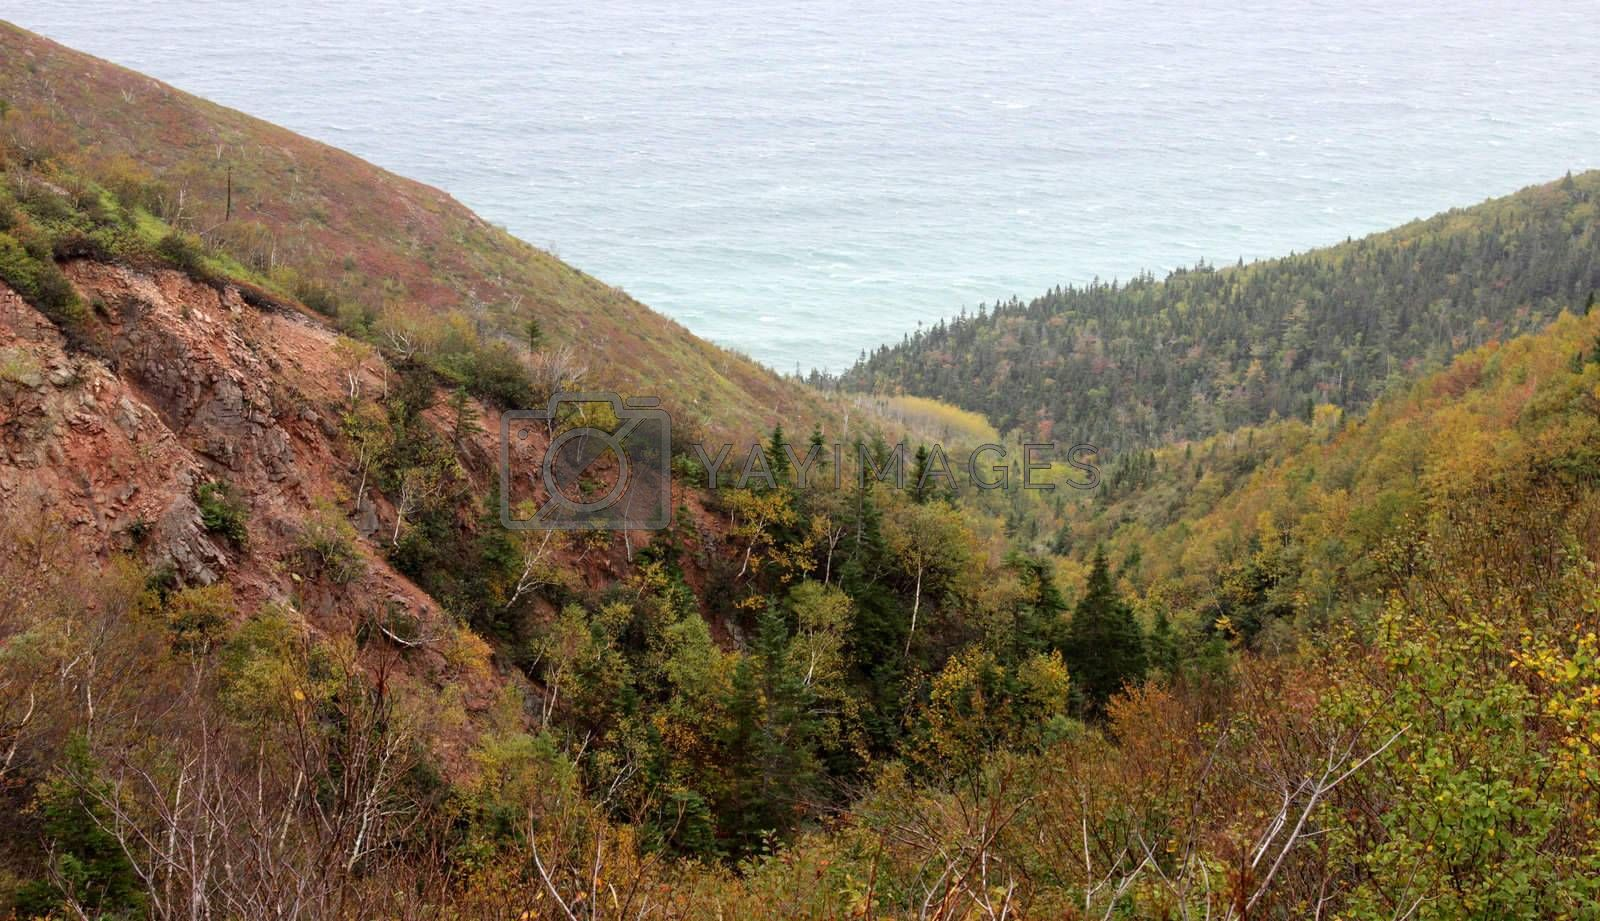 The rolling cliff like hills of Cape Breton Highlands national park in Nova Scotia, Canada.